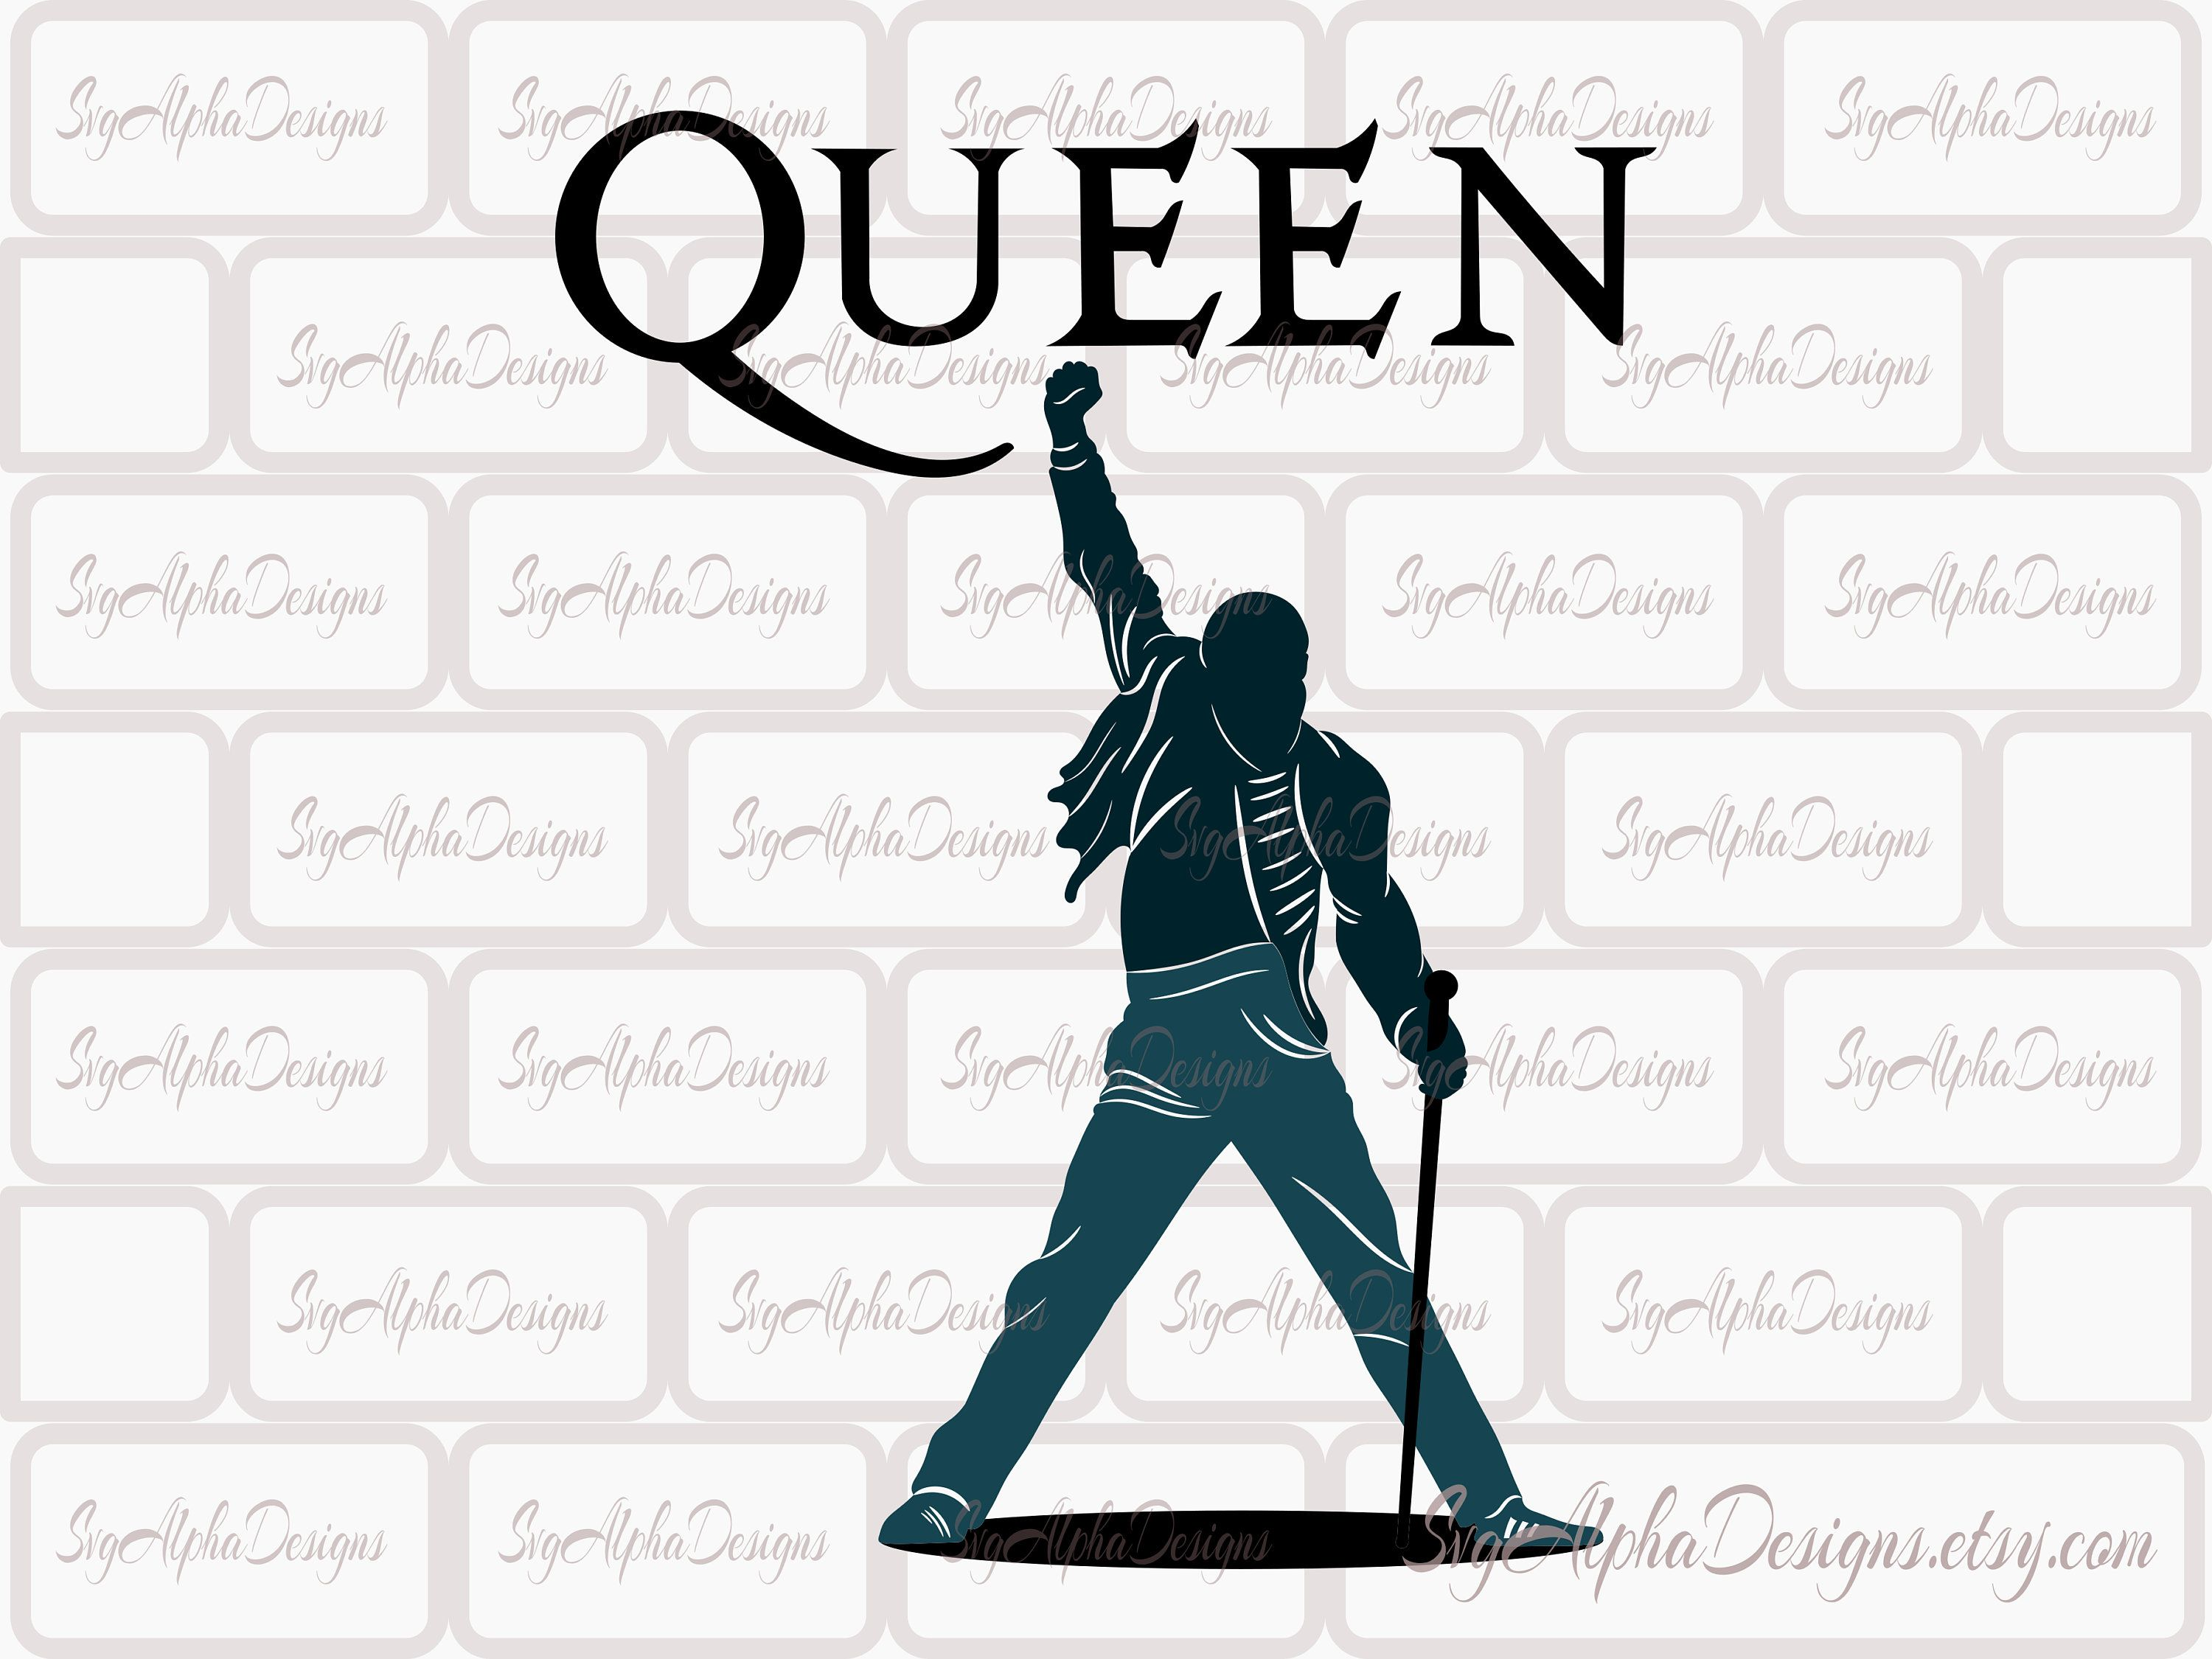 Pin By Lynn Kita On Svg Queen Band Svg Files For Cricut Svg